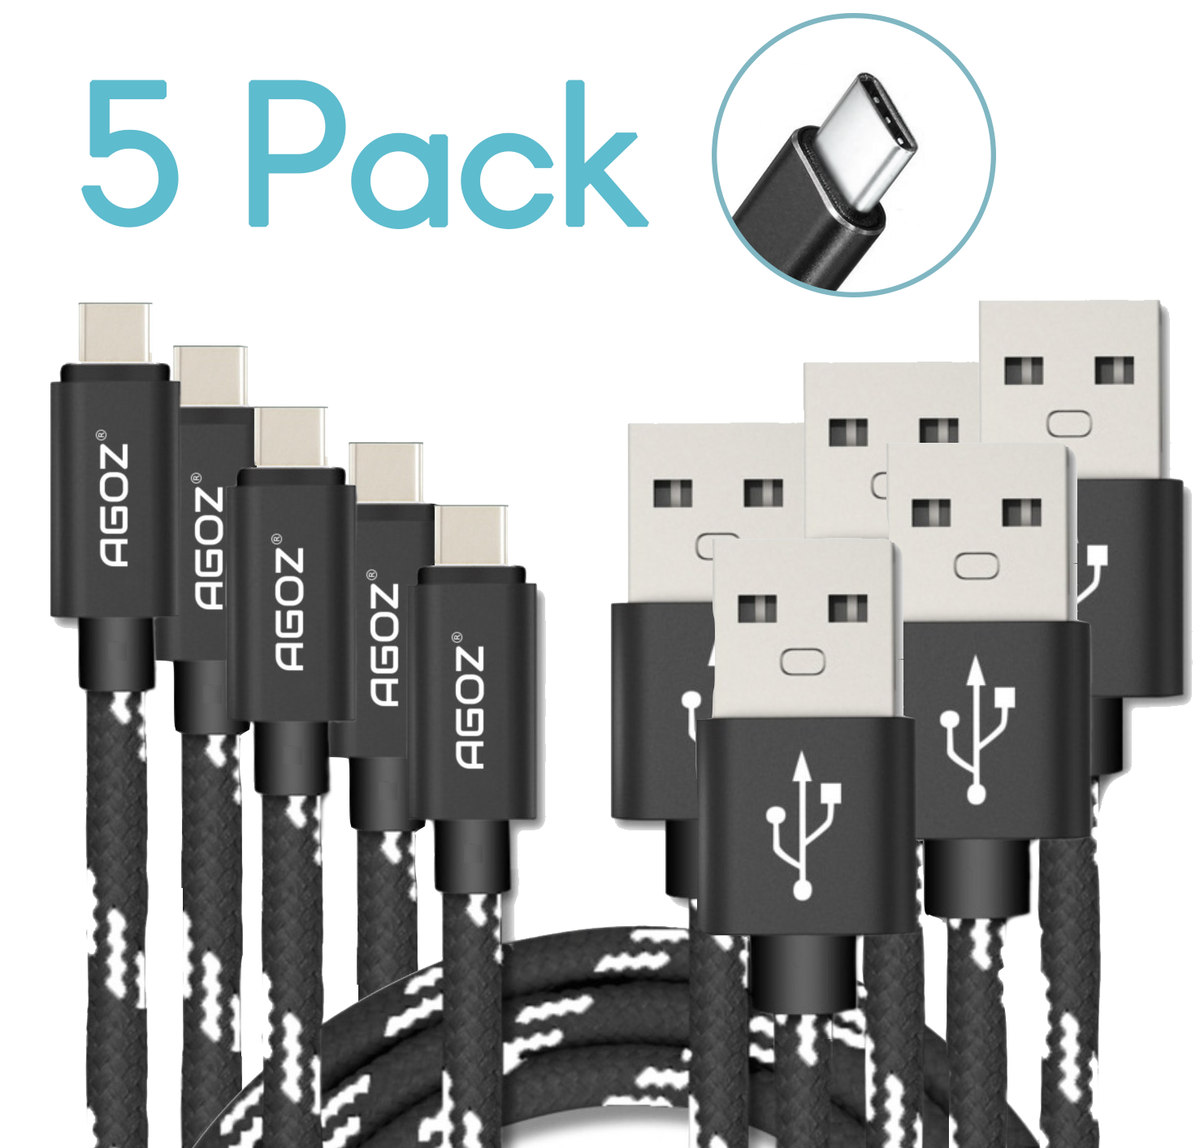 5 Pack USB-C Cable FAST Charger Type-C Braided Data Sync Cord for ZTE Smartphone - https://t.co/KBCL4wt7NY https://t.co/uAFzITyFzs